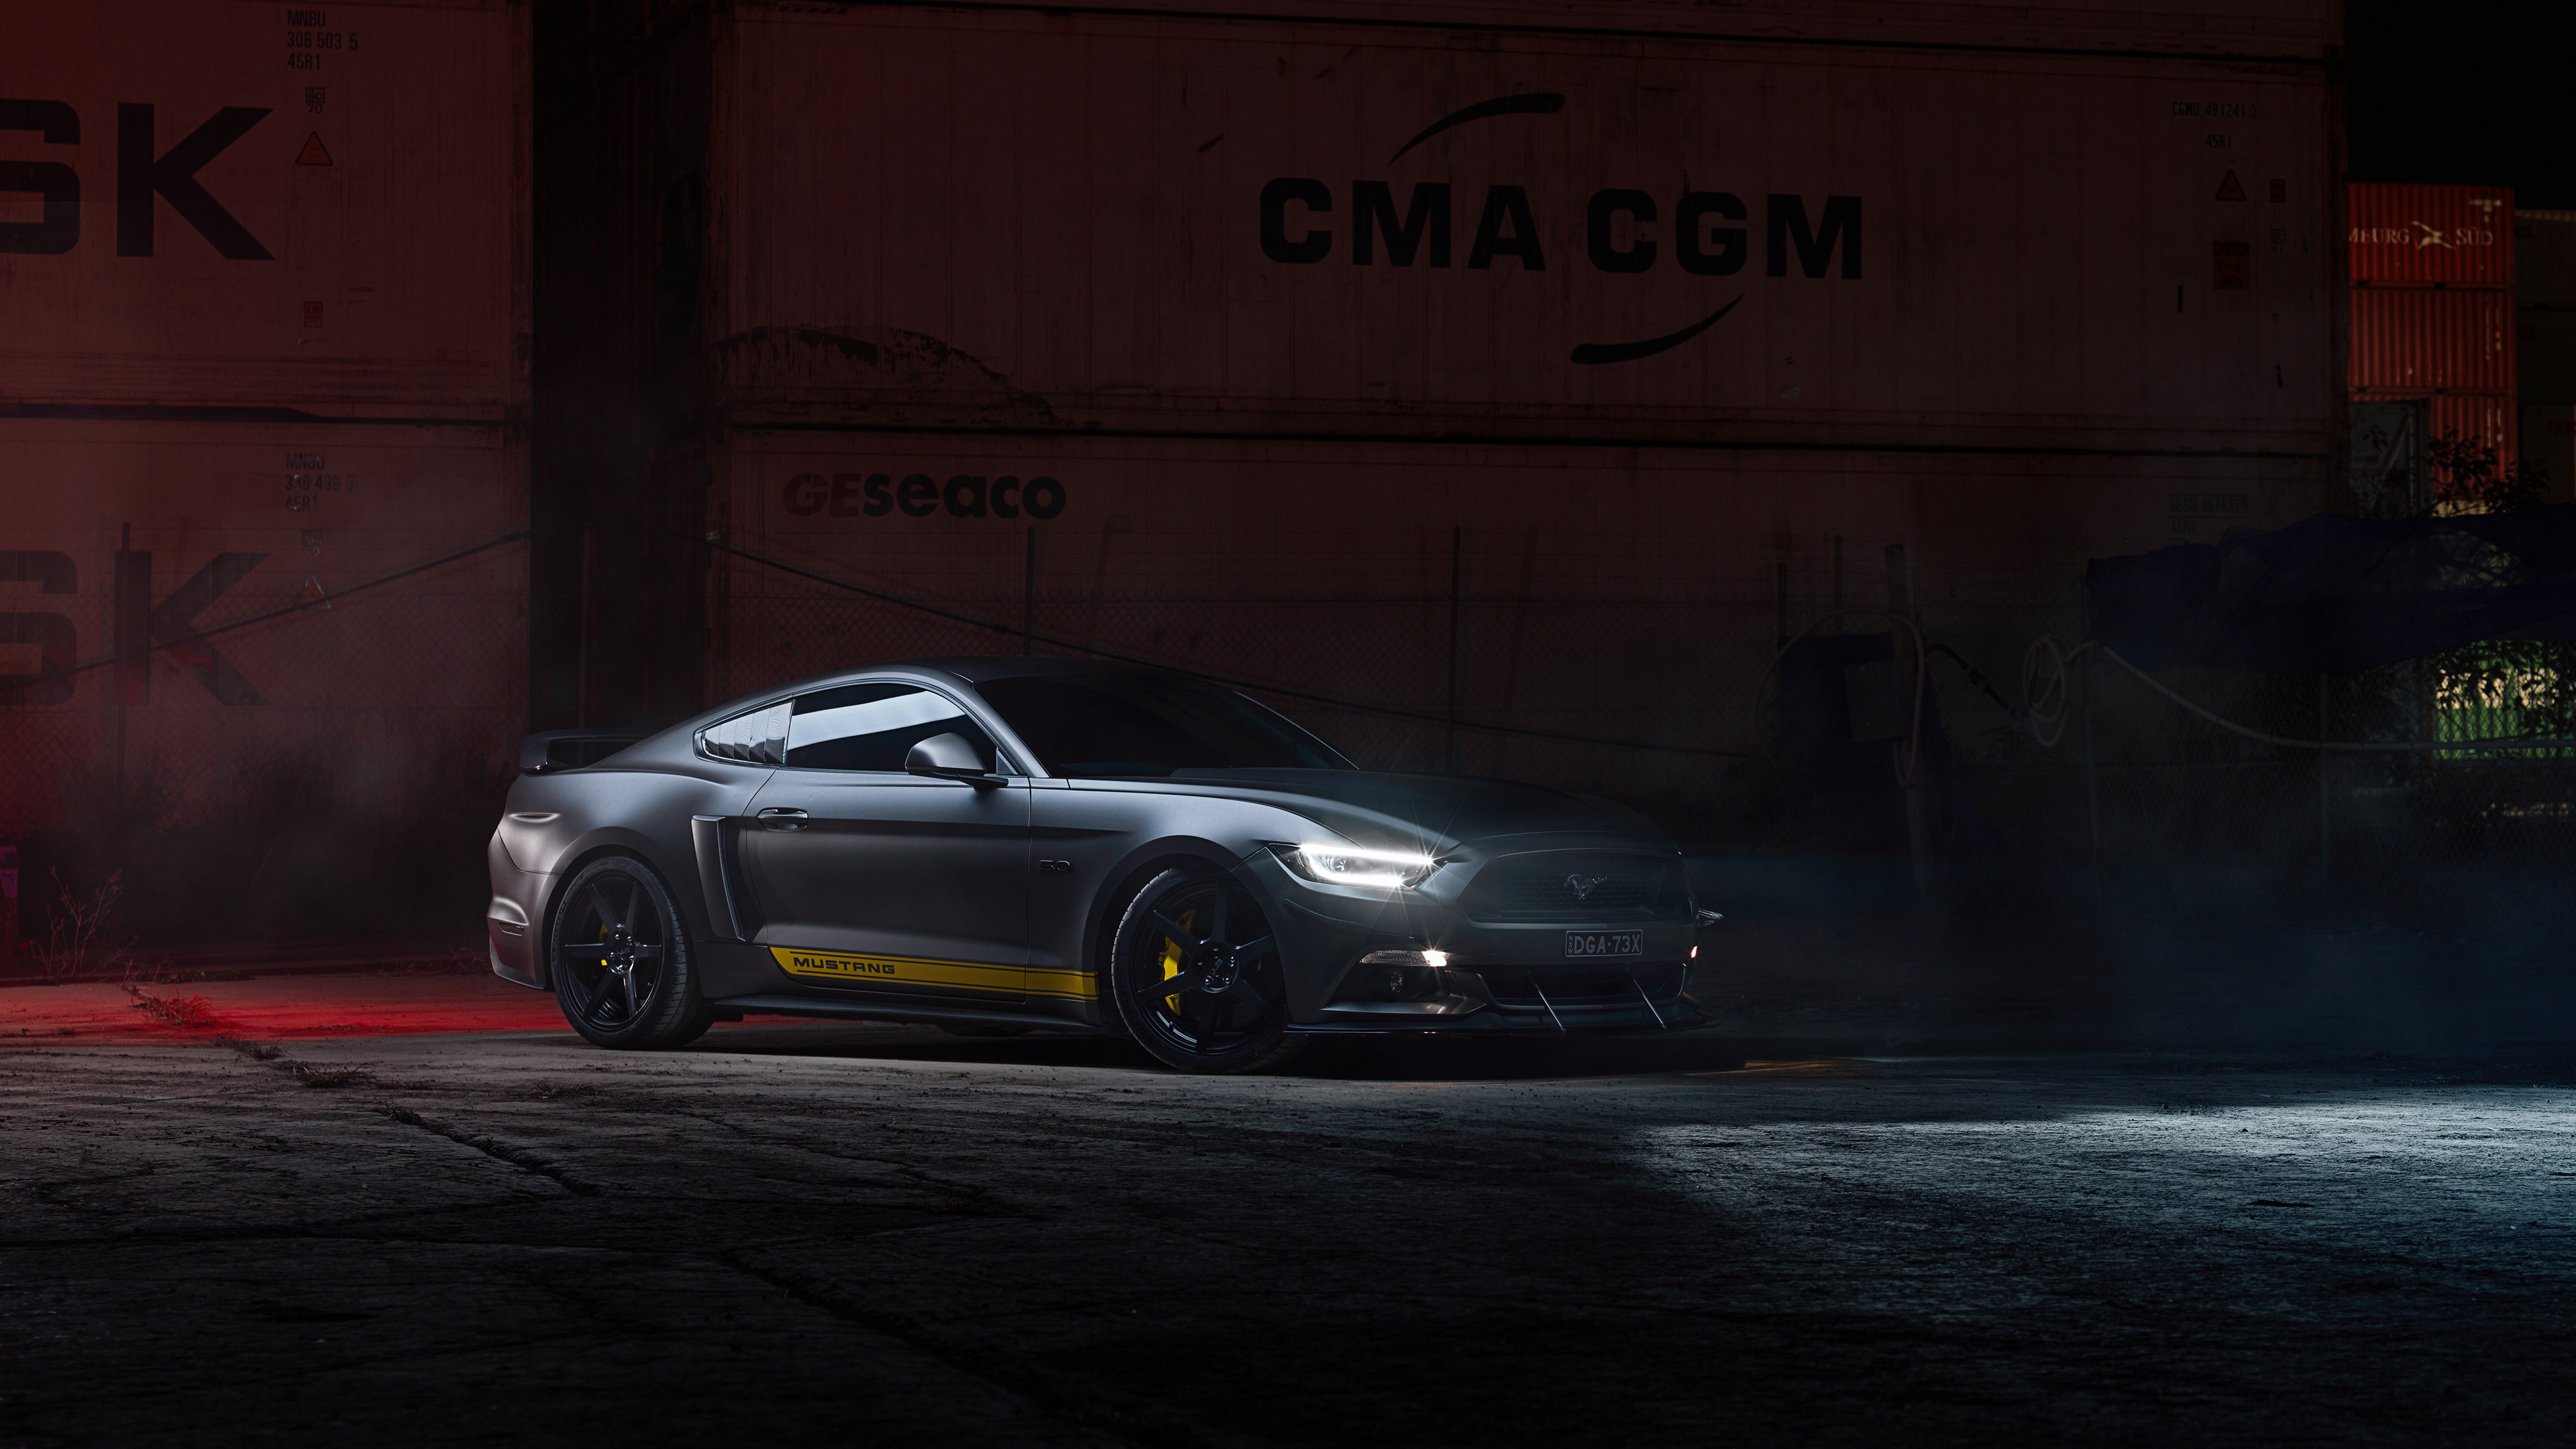 ford mustang new 1569188391 - Ford Mustang New - hd-wallpapers, ford wallpapers, ford mustang wallpapers, cars wallpapers, behance wallpapers, 4k-wallpapers, 2019 cars wallpapers